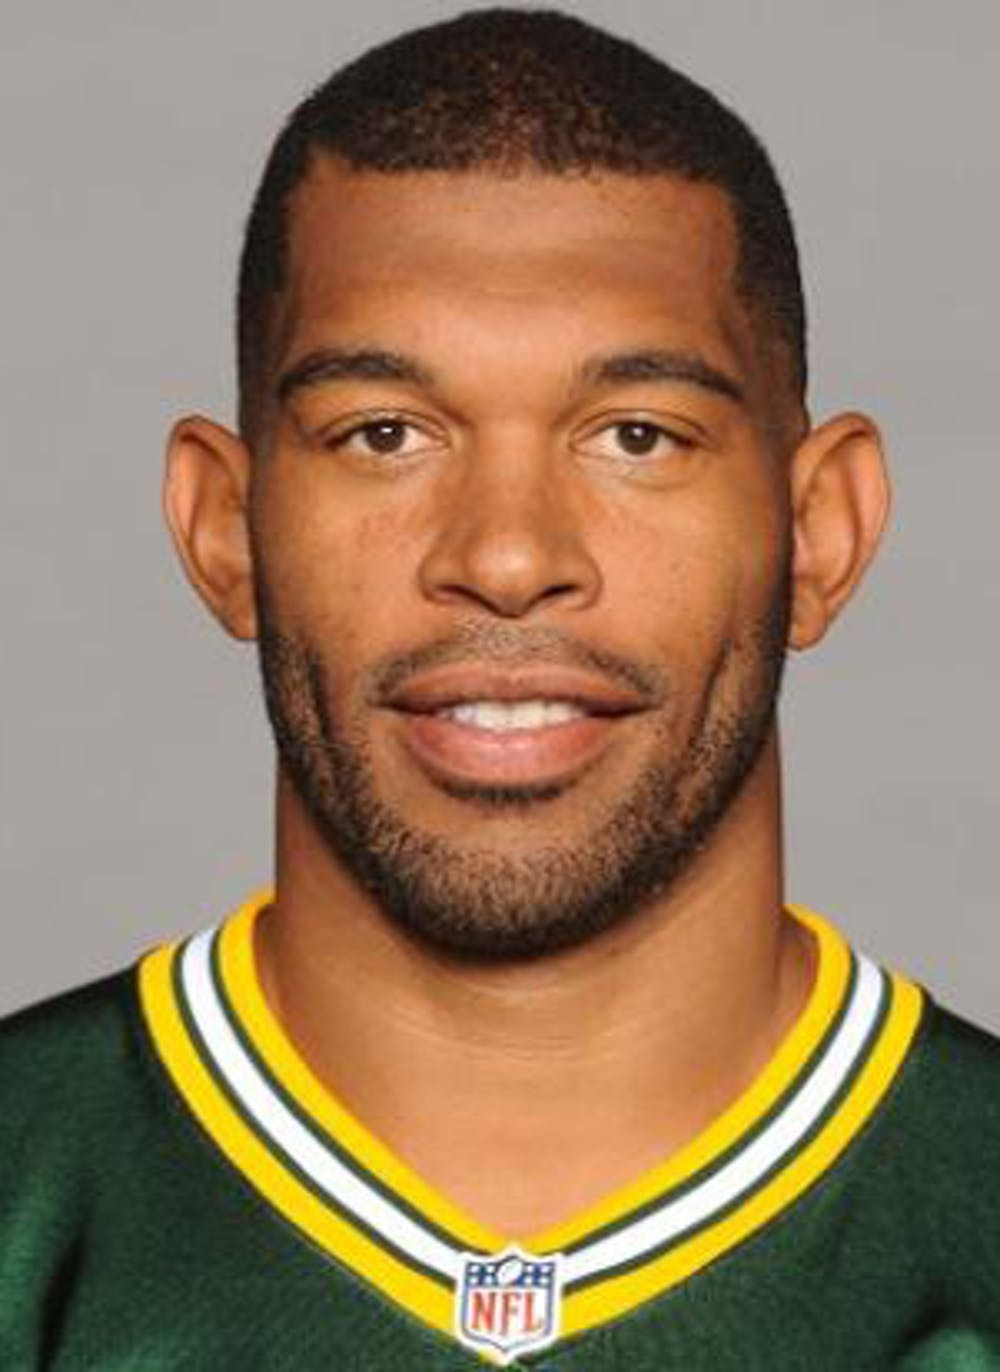 UNC's Julius Peppers named to College Football Hall of Fame ballot